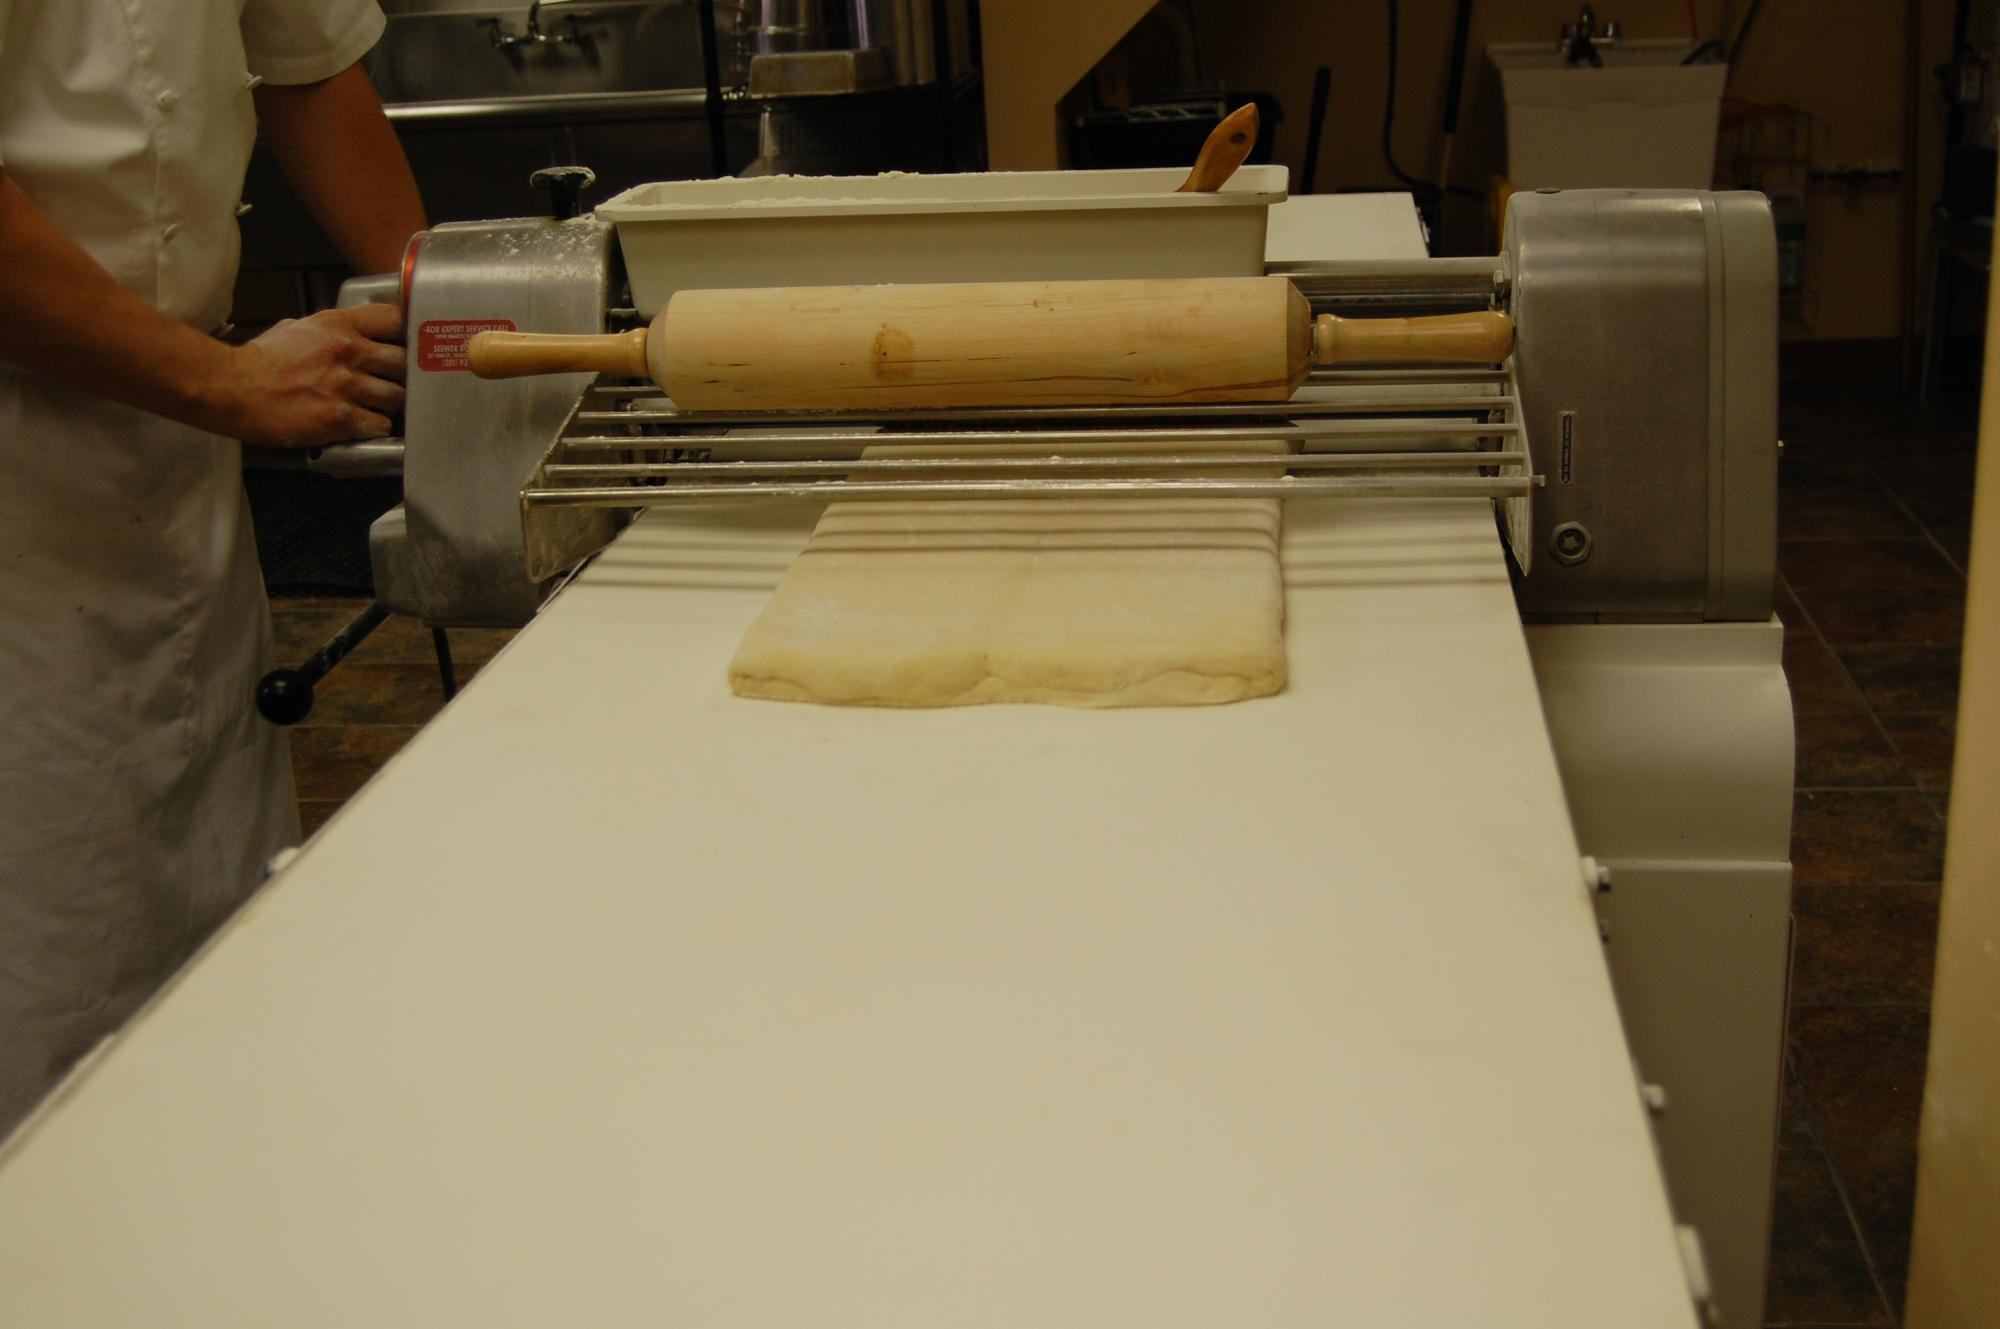 Laminating Danish Dough